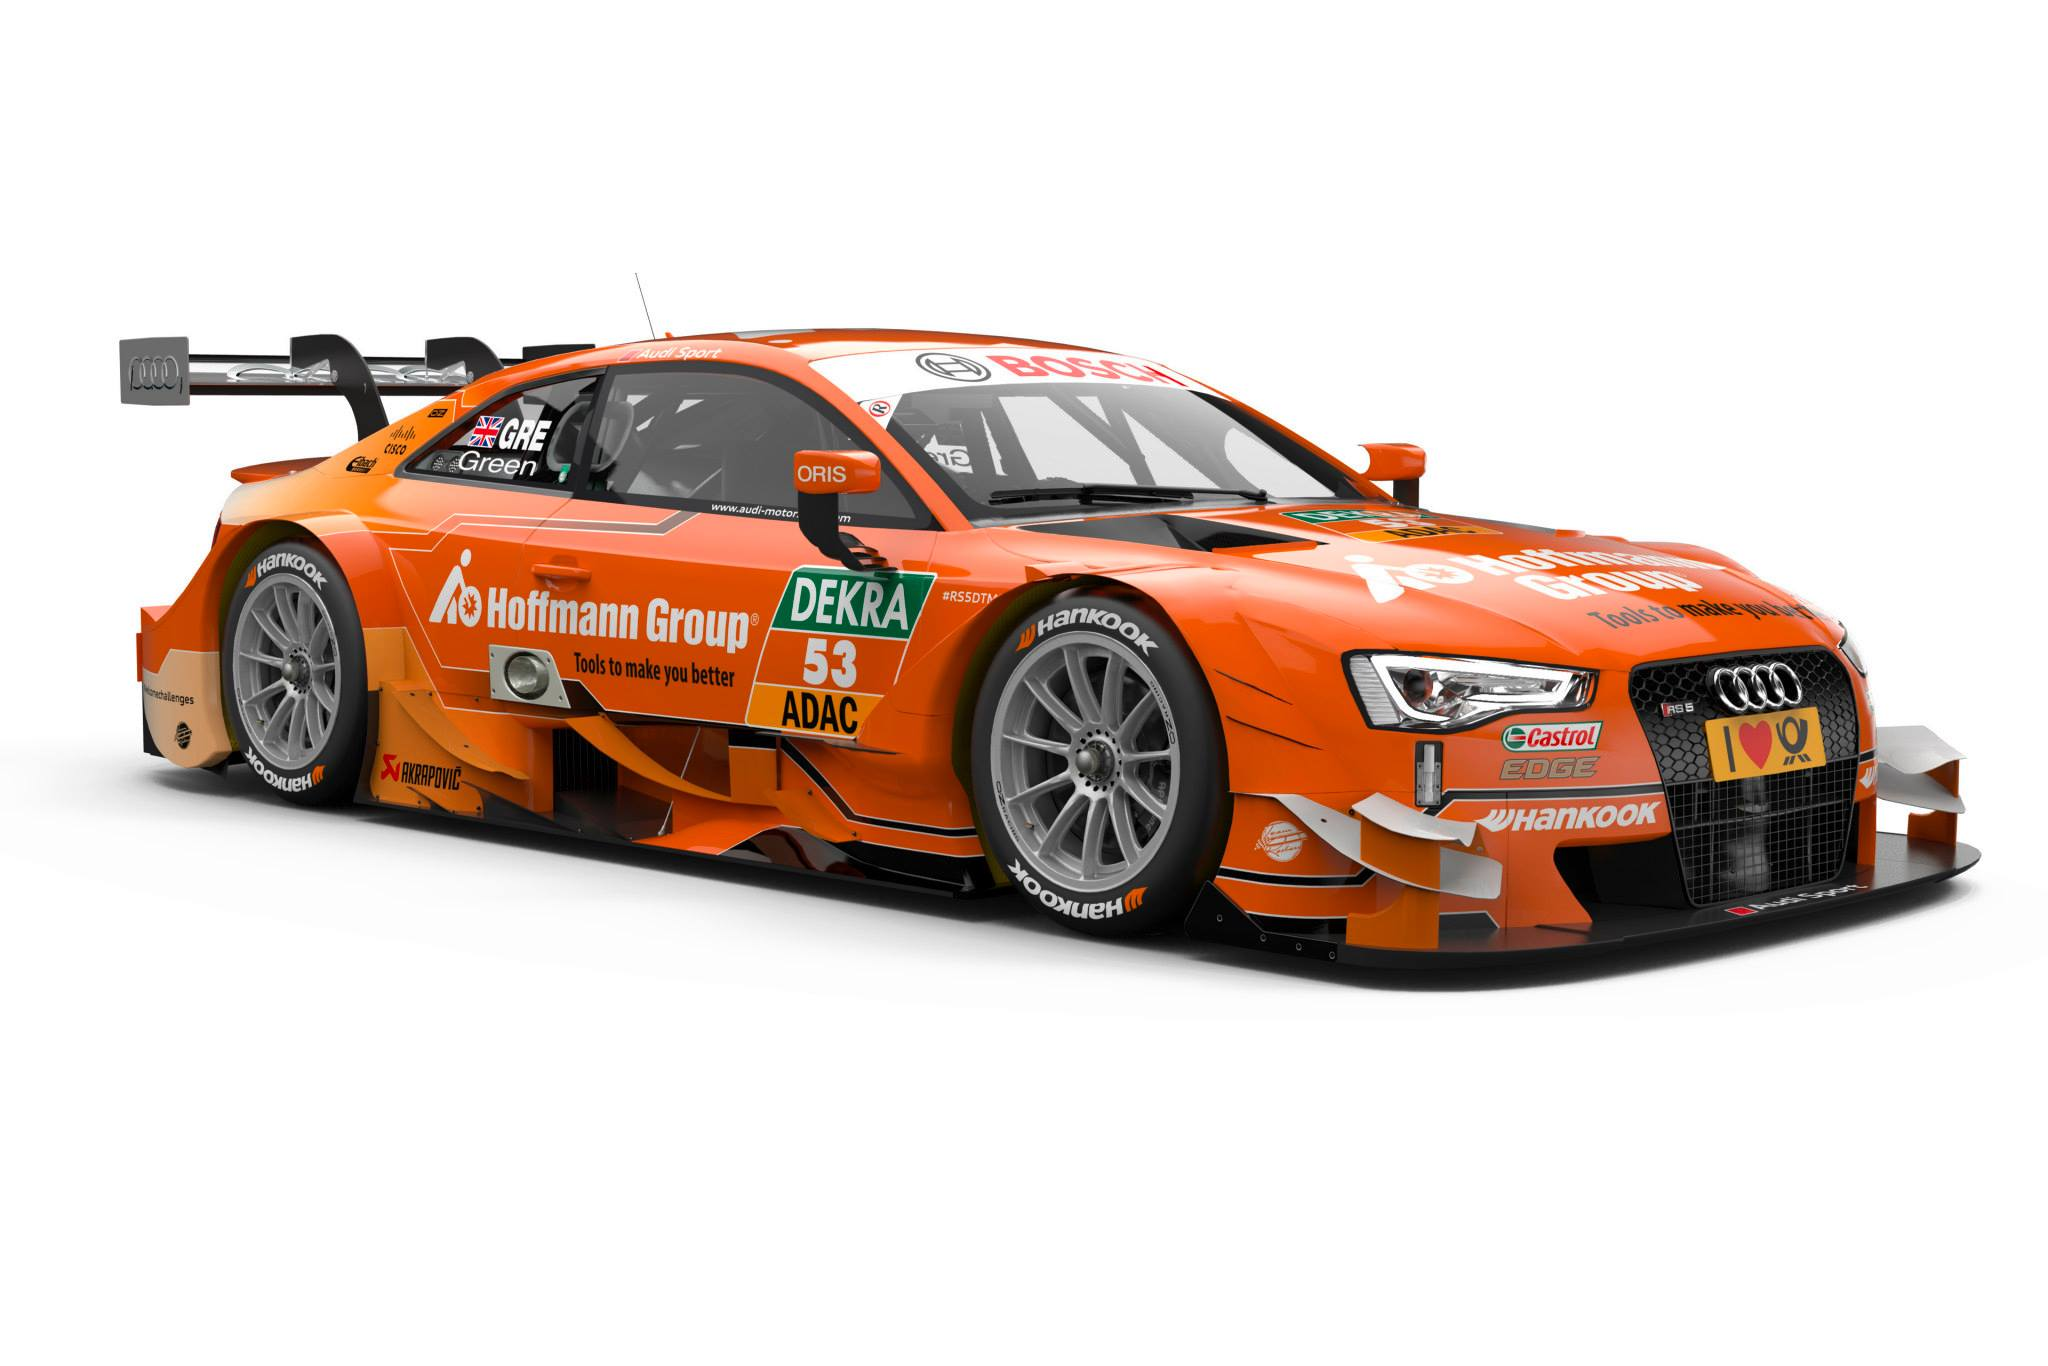 2015 Audi RS5 DTM - Jamie Green